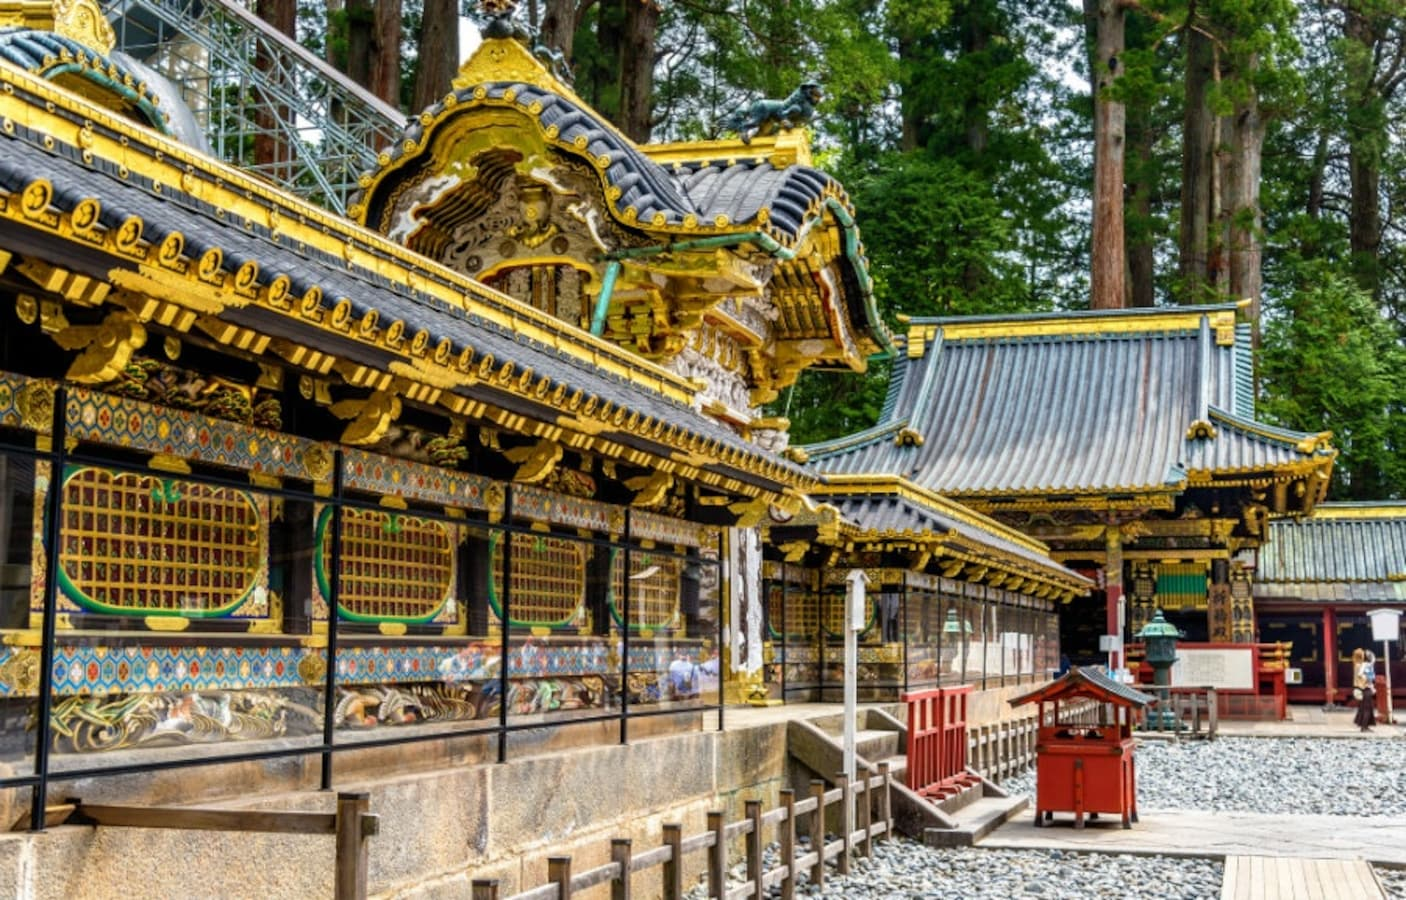 True Colors Nikko Toshogu Shrine All About Japan